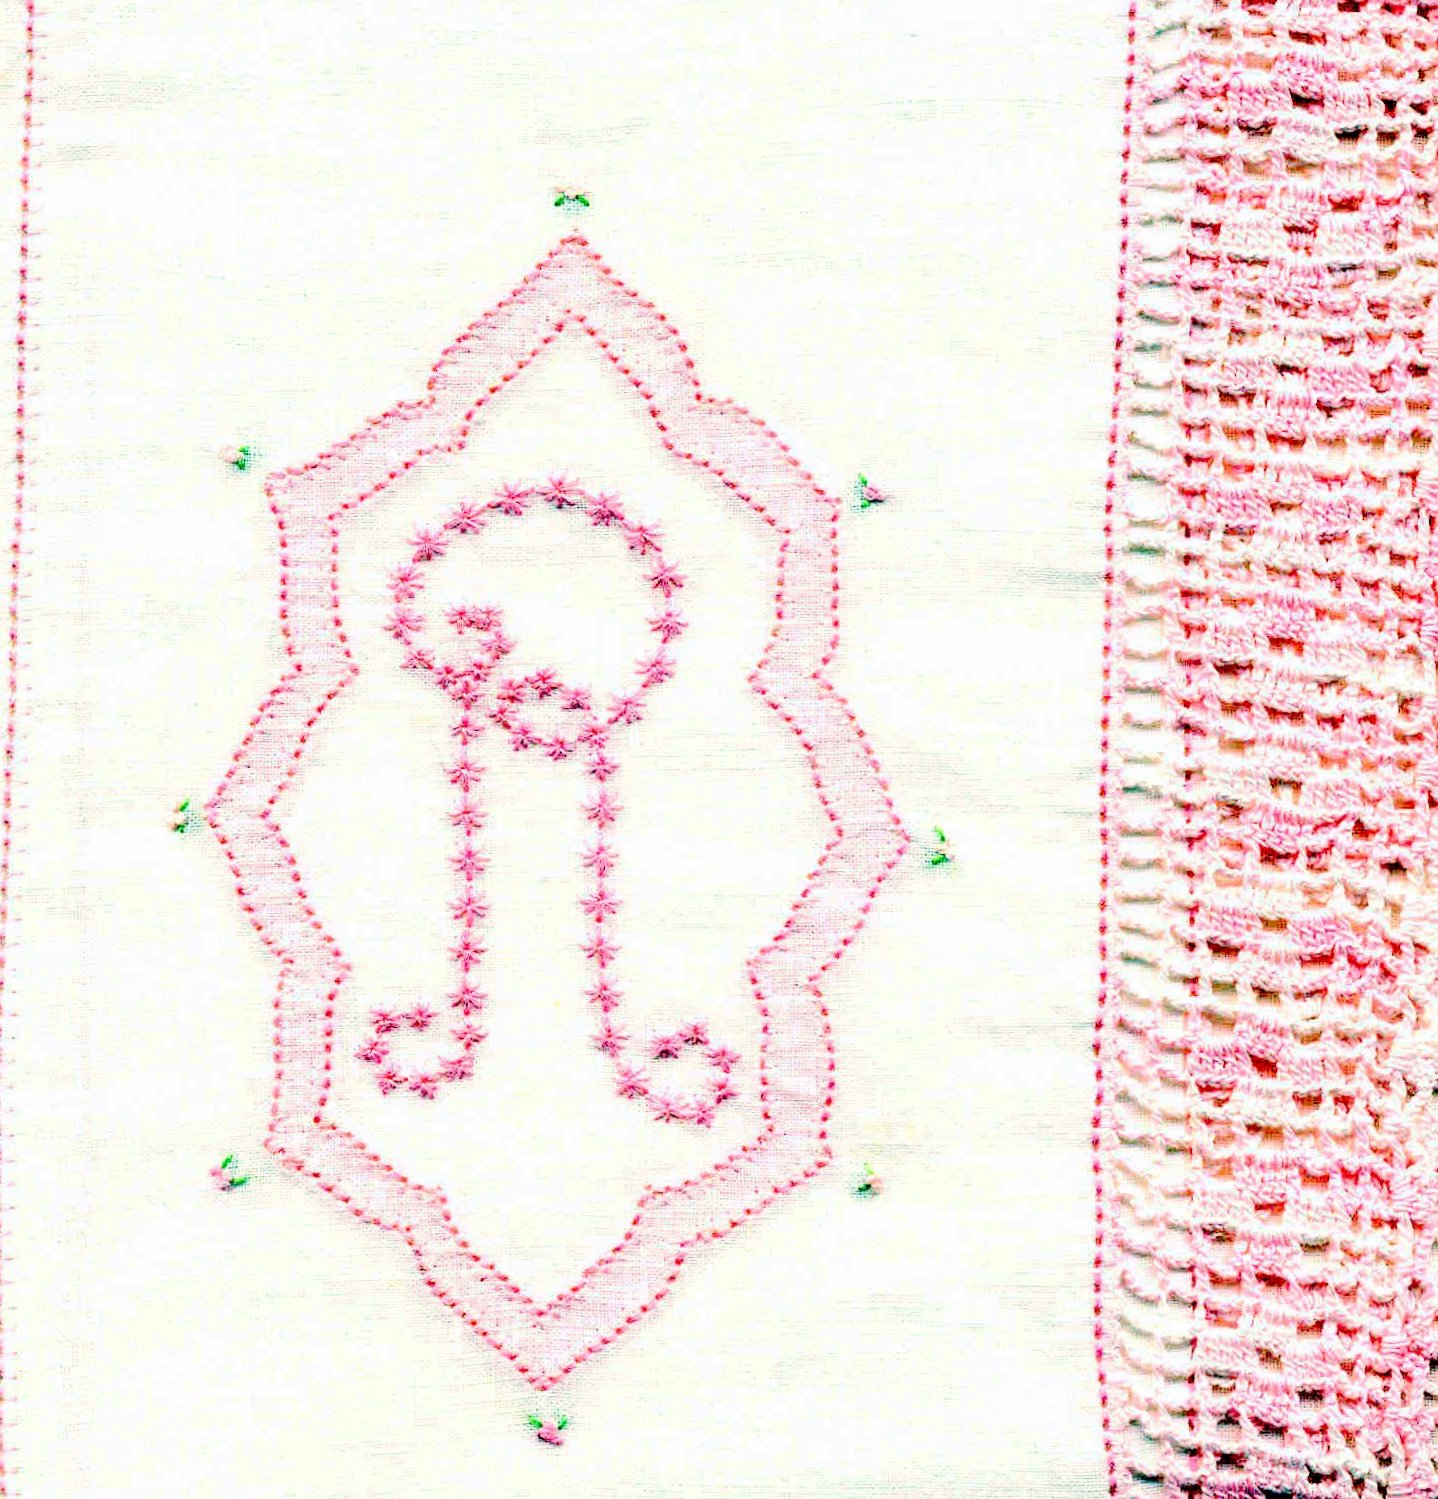 Vintage Antimacassar Doily Filet Crochet Monogram A (04/06/2009)